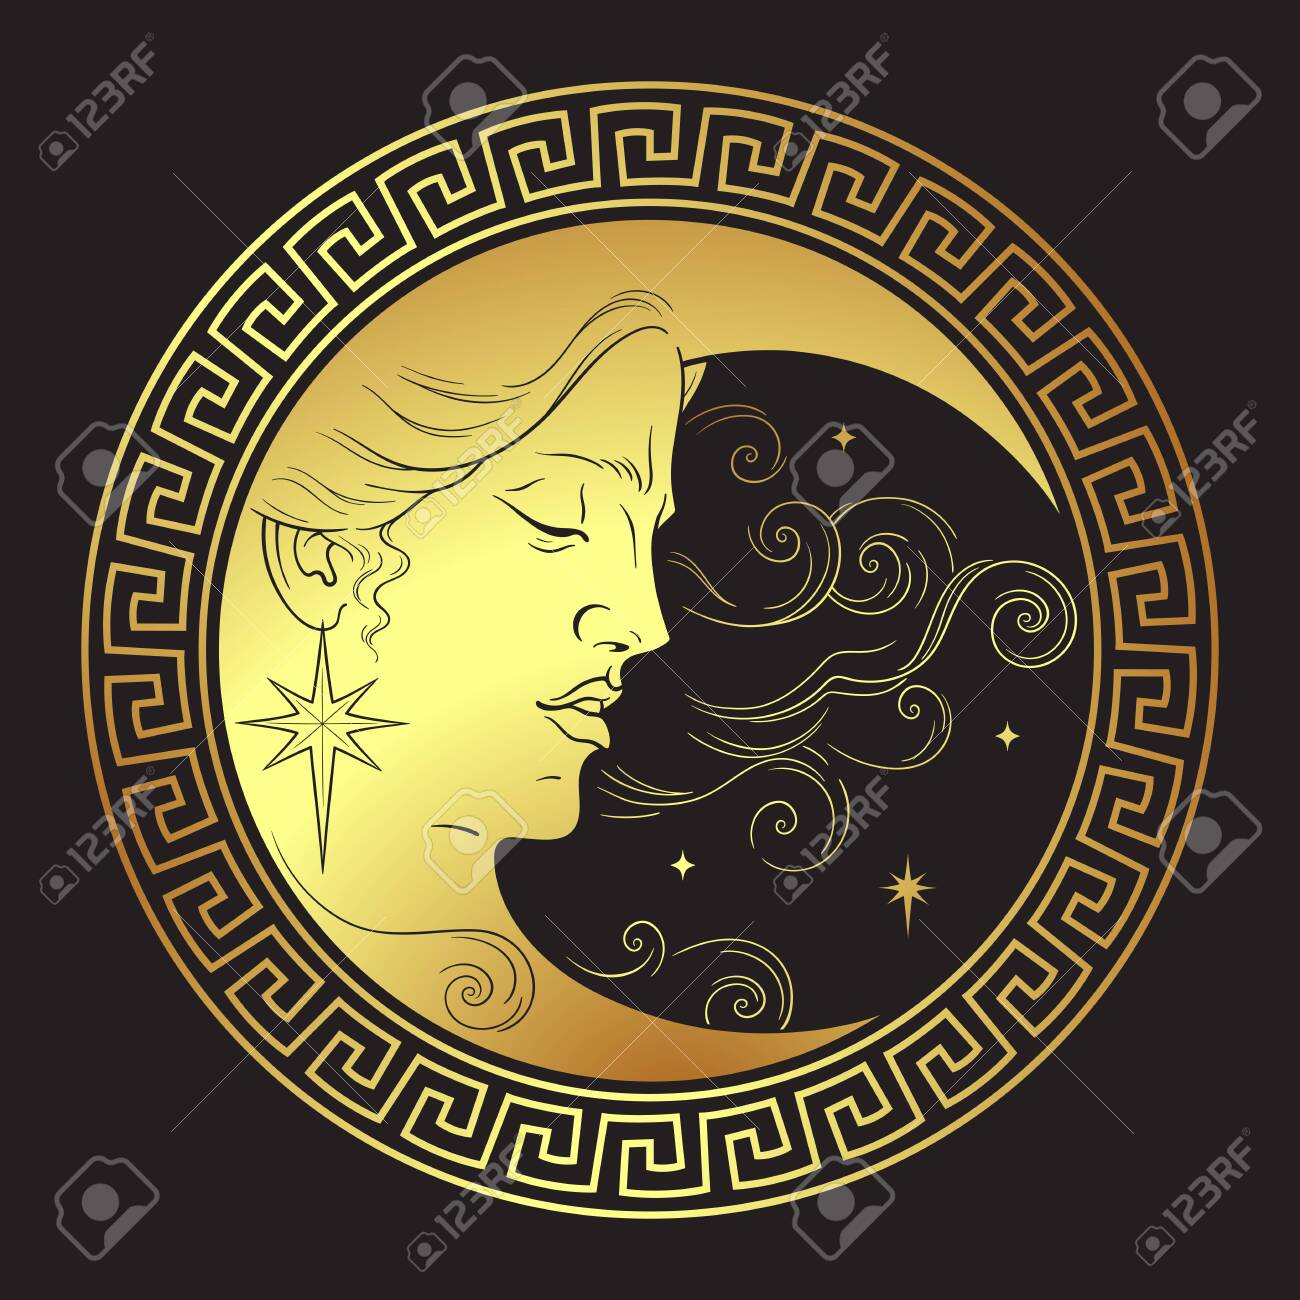 Crescent moon in antique style hand drawn line art boho chic art tattoo, poster, altar veil, tapestry or fabric print design vector illustration - 145667445